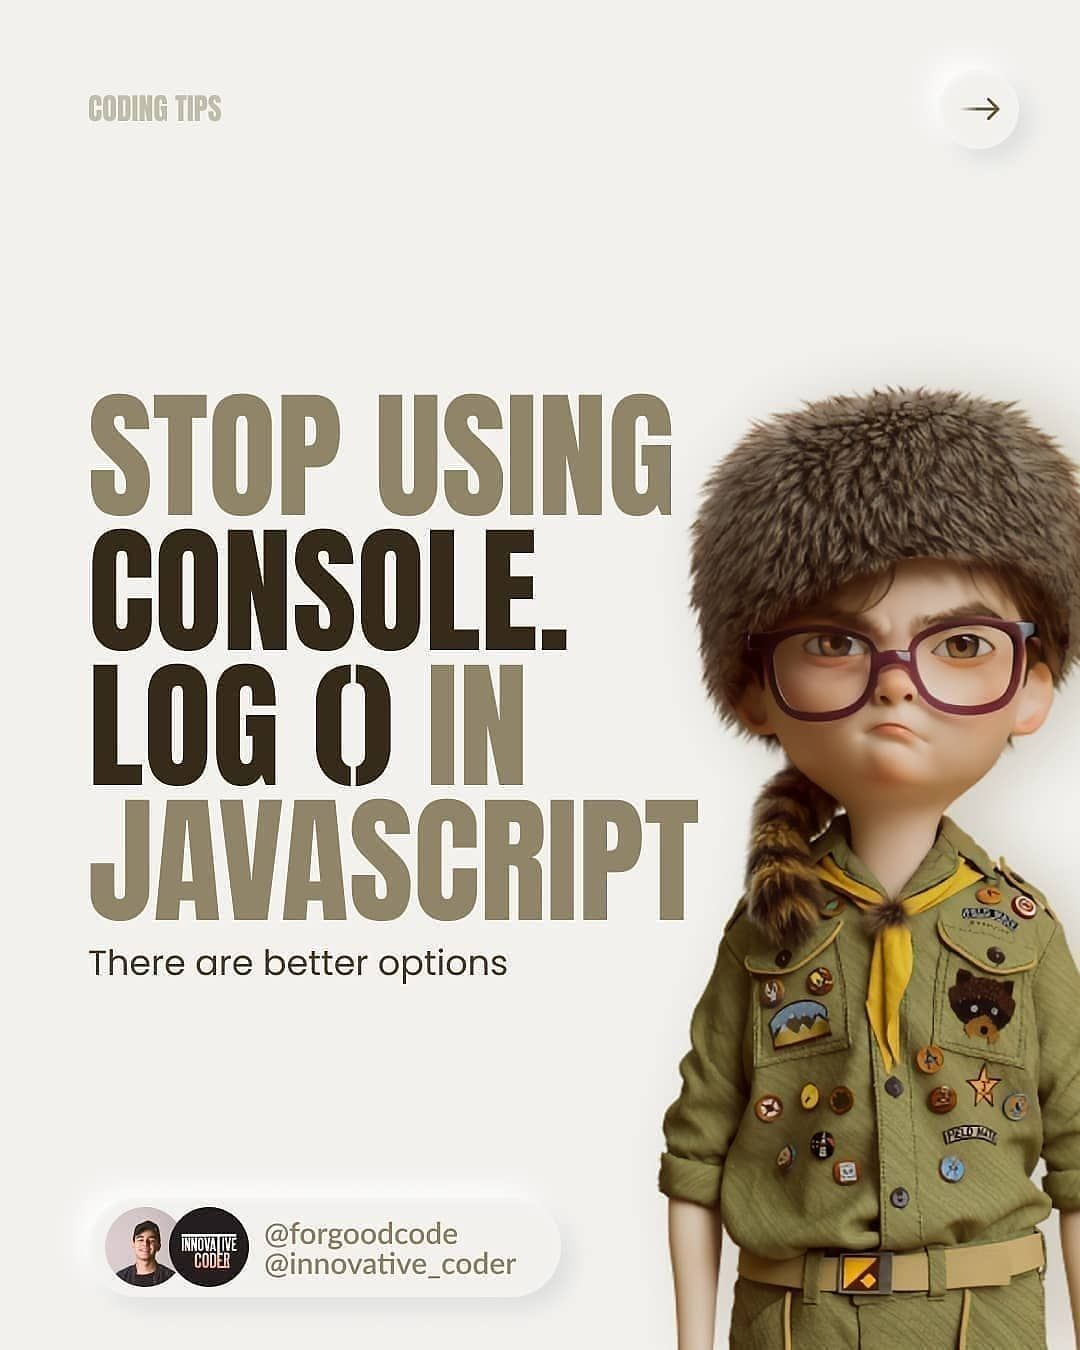 Stop using console.log in javascript